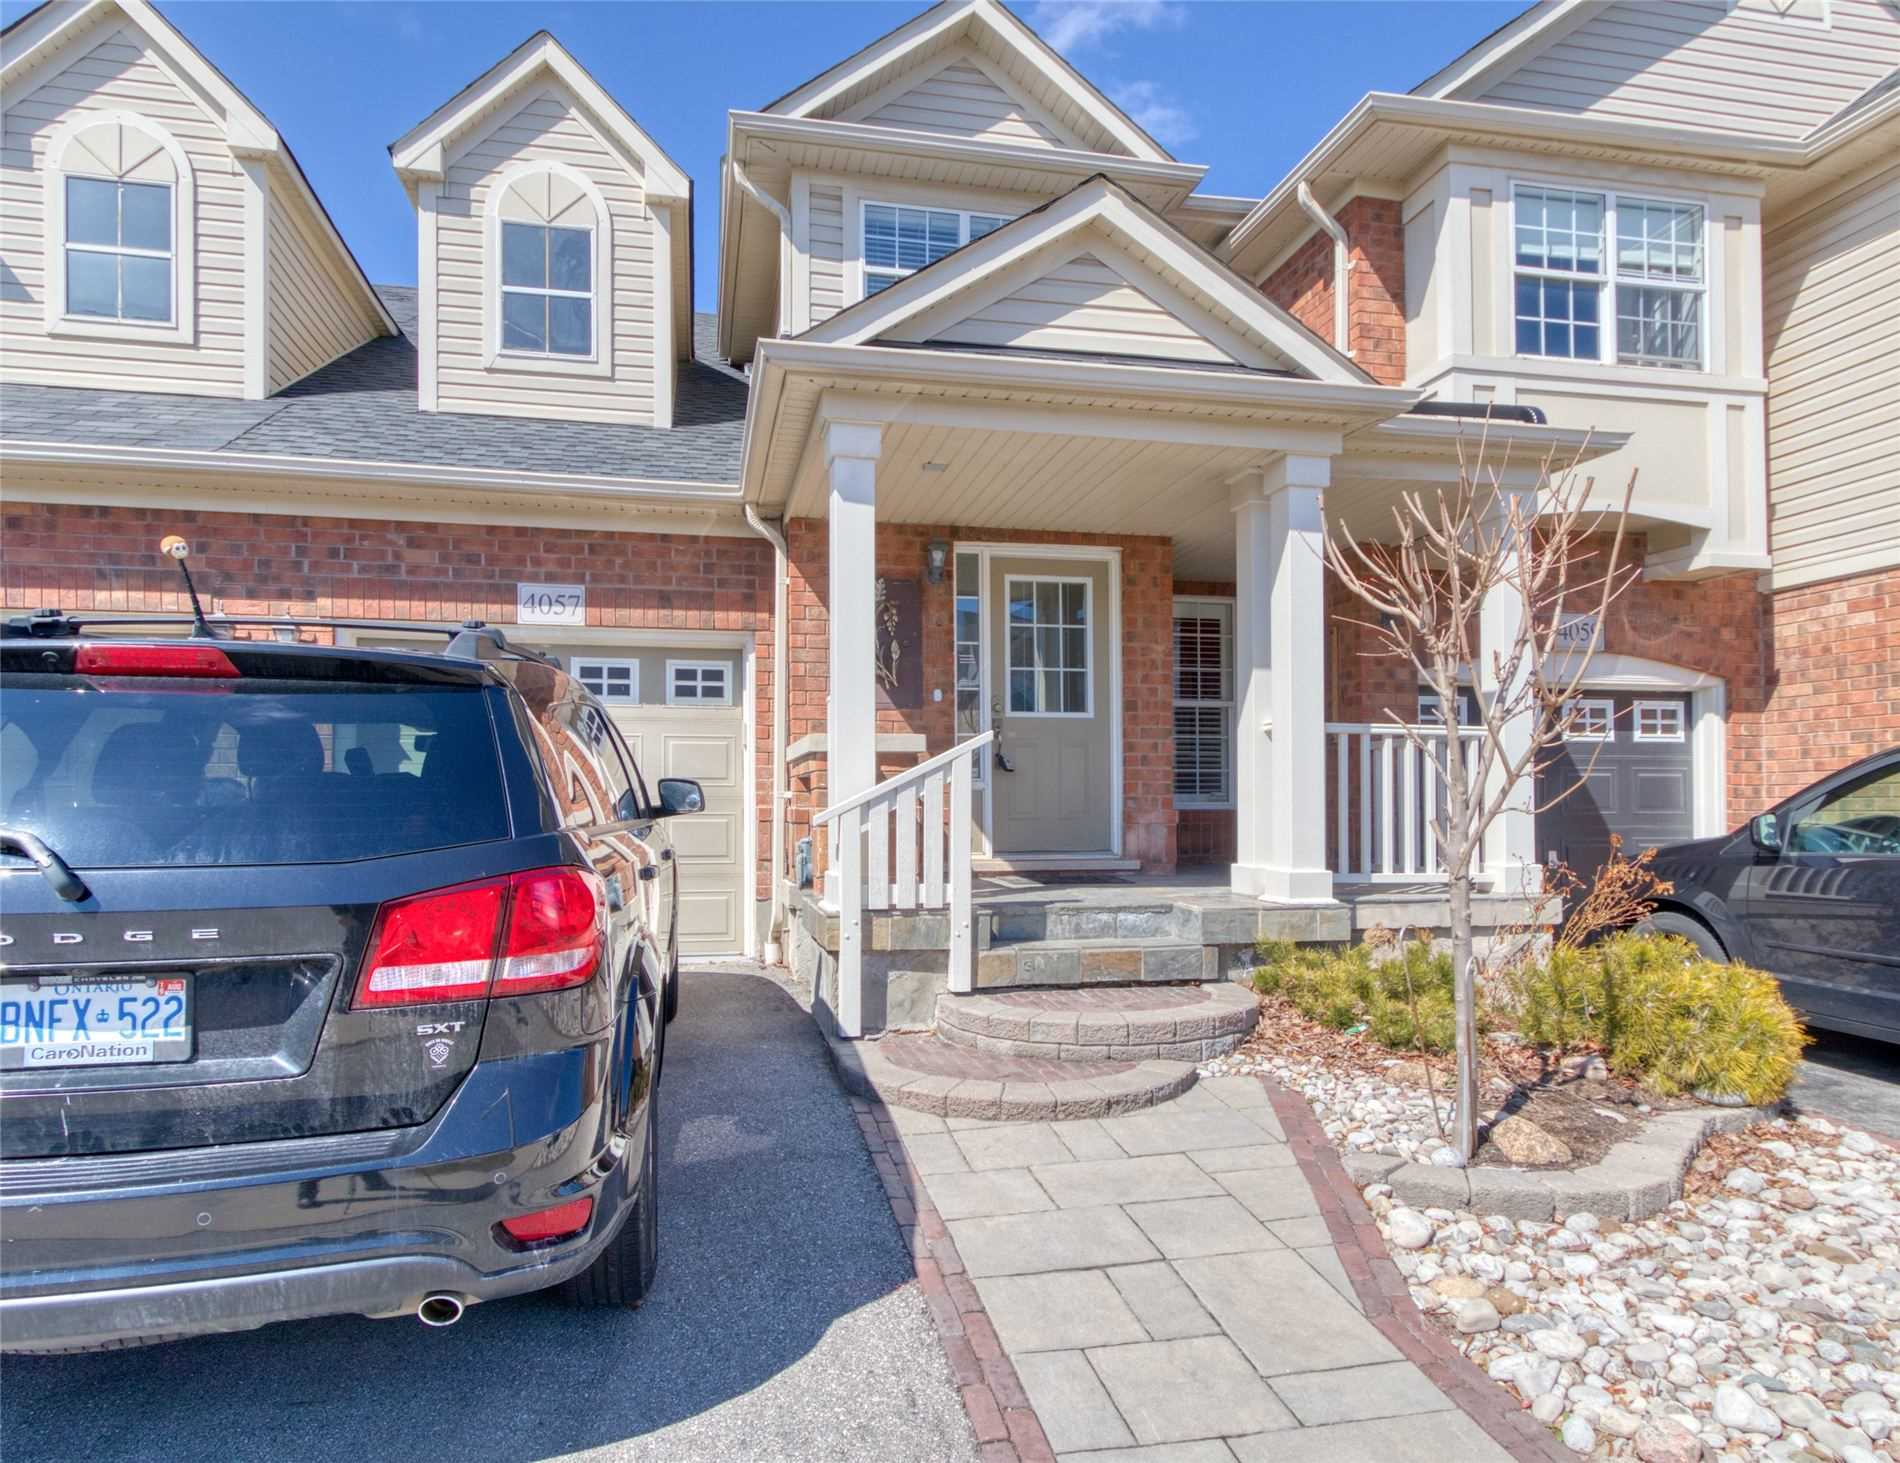 4057 Donnic Dr, Burlington, L7M 0A5, 3 Bedrooms Bedrooms, ,4 BathroomsBathrooms,Att/Row/Twnhouse,For Sale,Donnic,W4730785